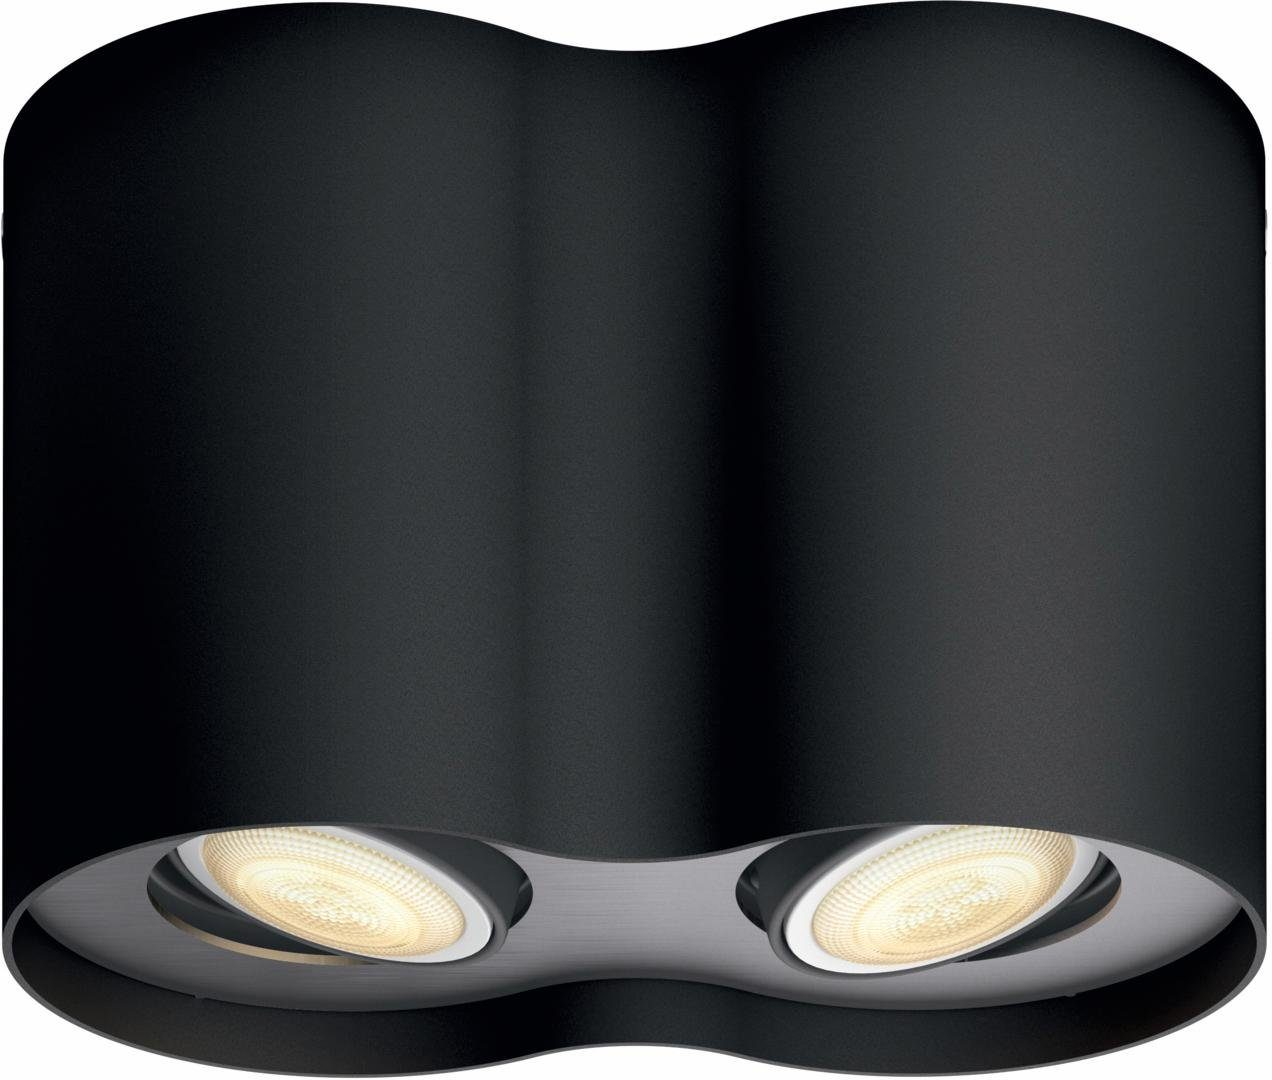 Philips Hue LED Deckenspot »Pillar«, 2-flammig, Smart Home